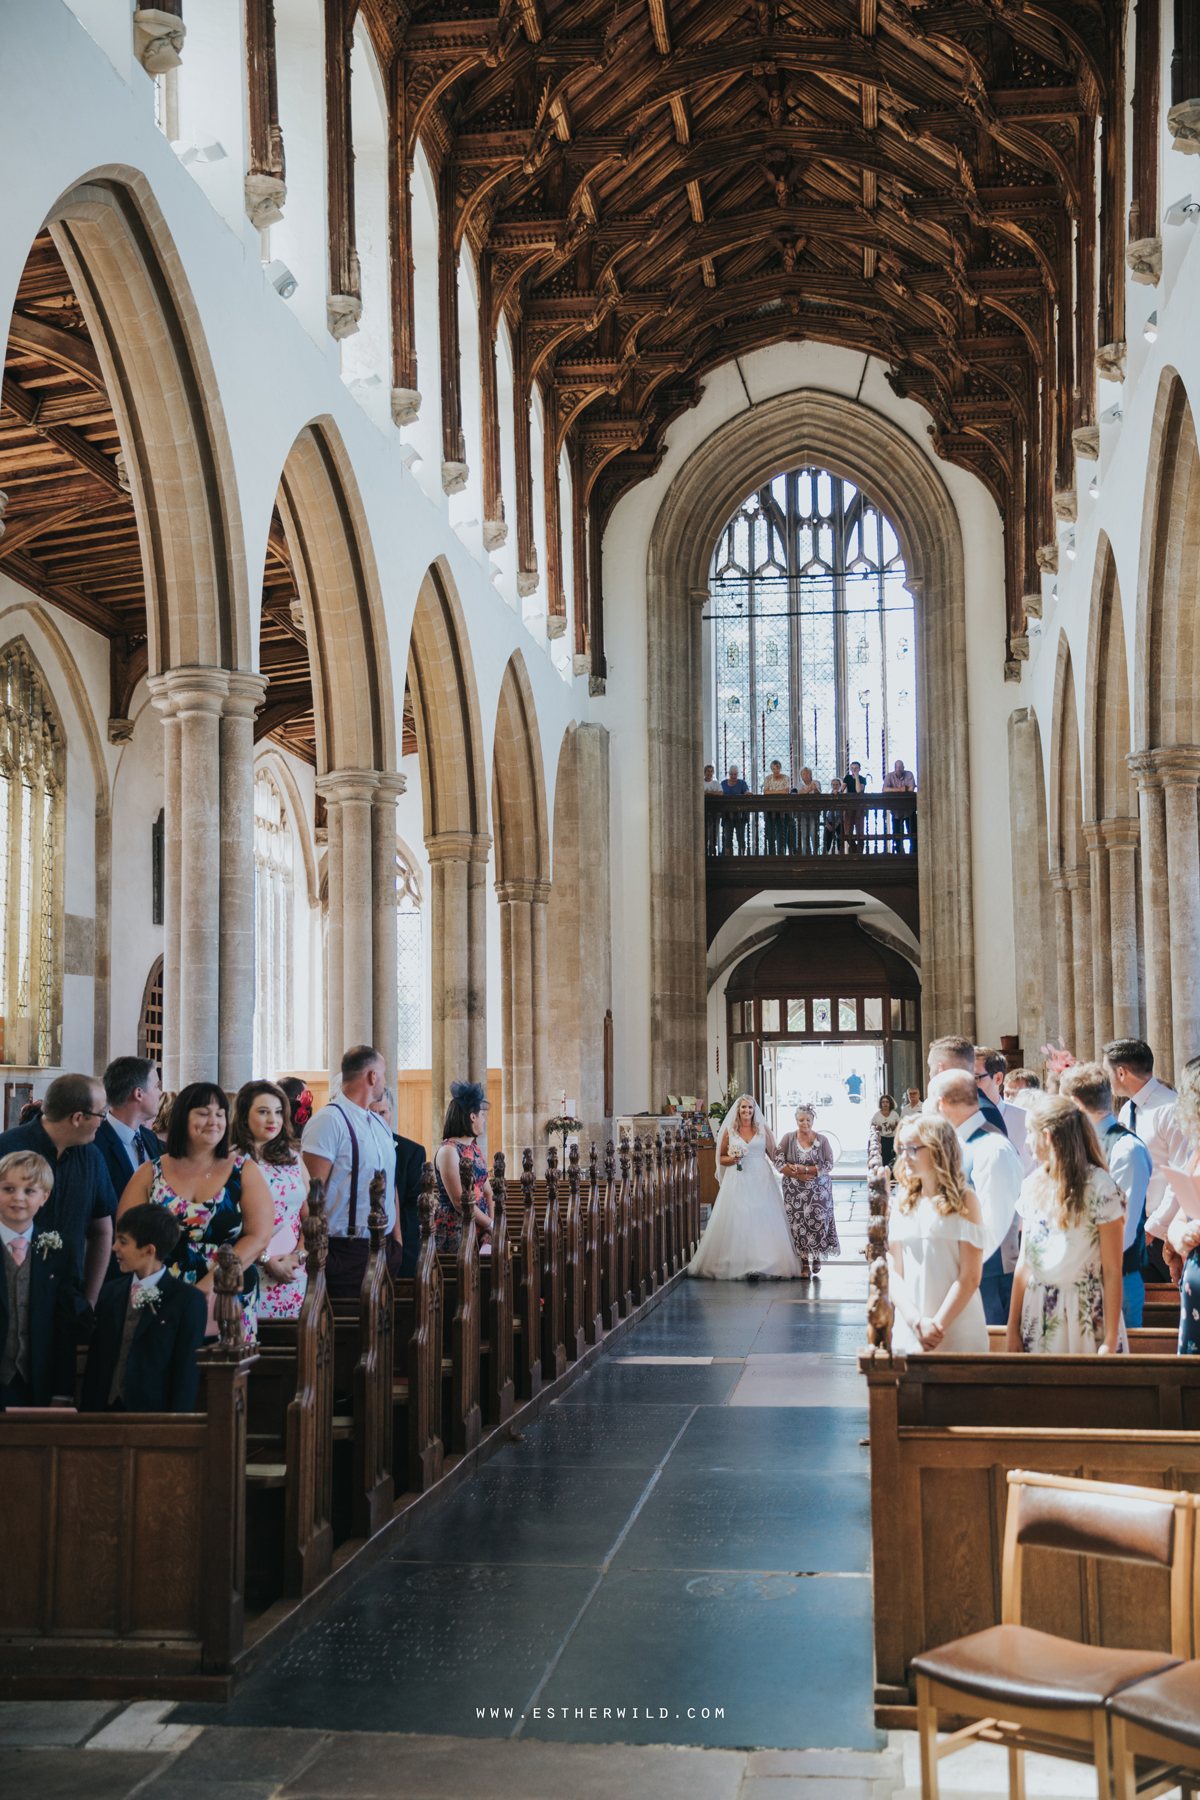 Swaffham_Wedding_Castle_Acre_Norfolk_Esther_Wild_Photographer_Wedding_Photography_3R8A0611.jpg